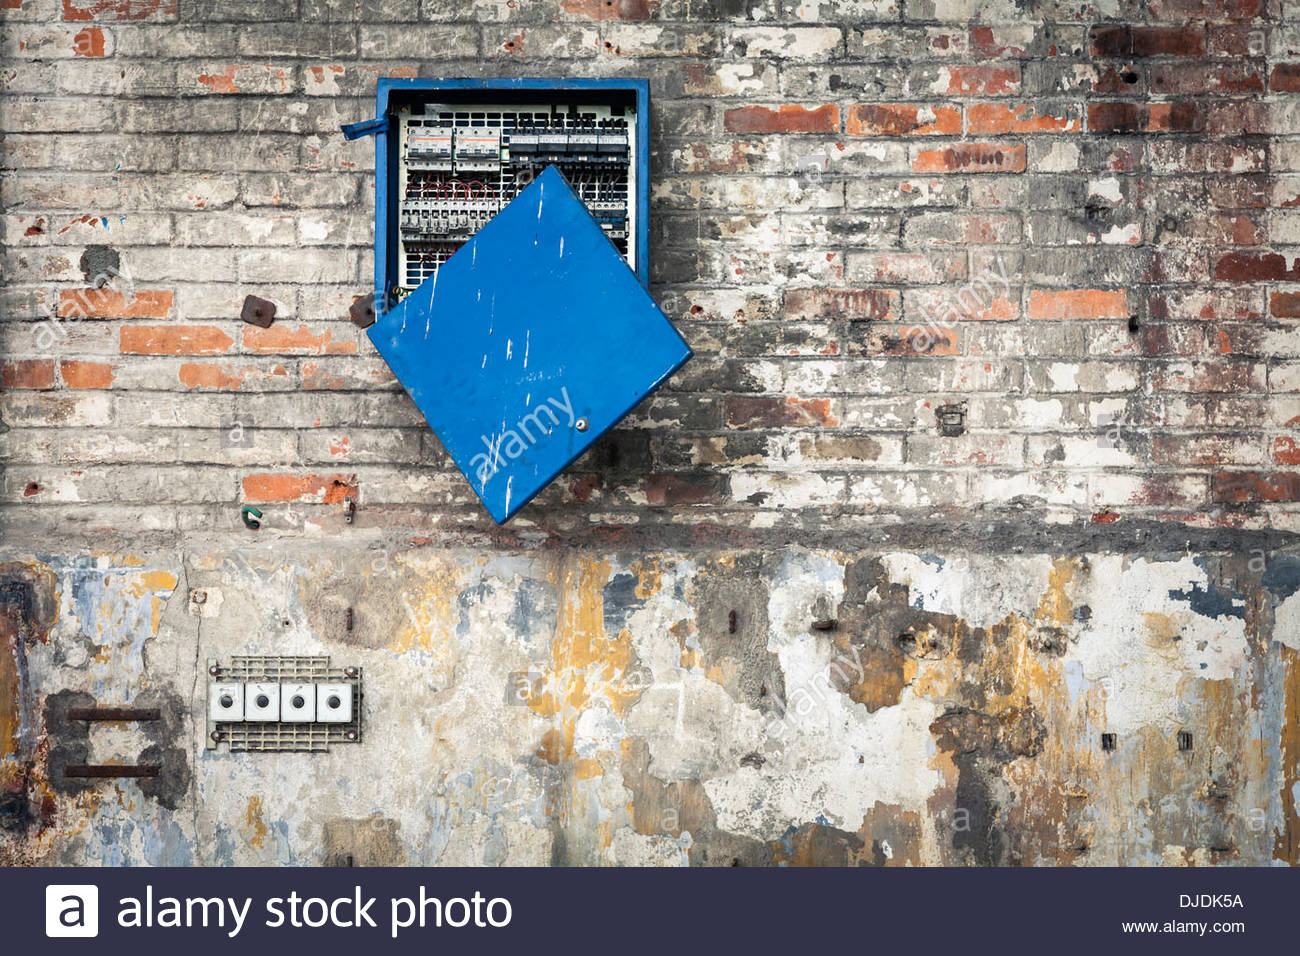 Circuit Breaker Panel Stock Photos Panels Broken Electric Distribution Board On The Outside Of A Building